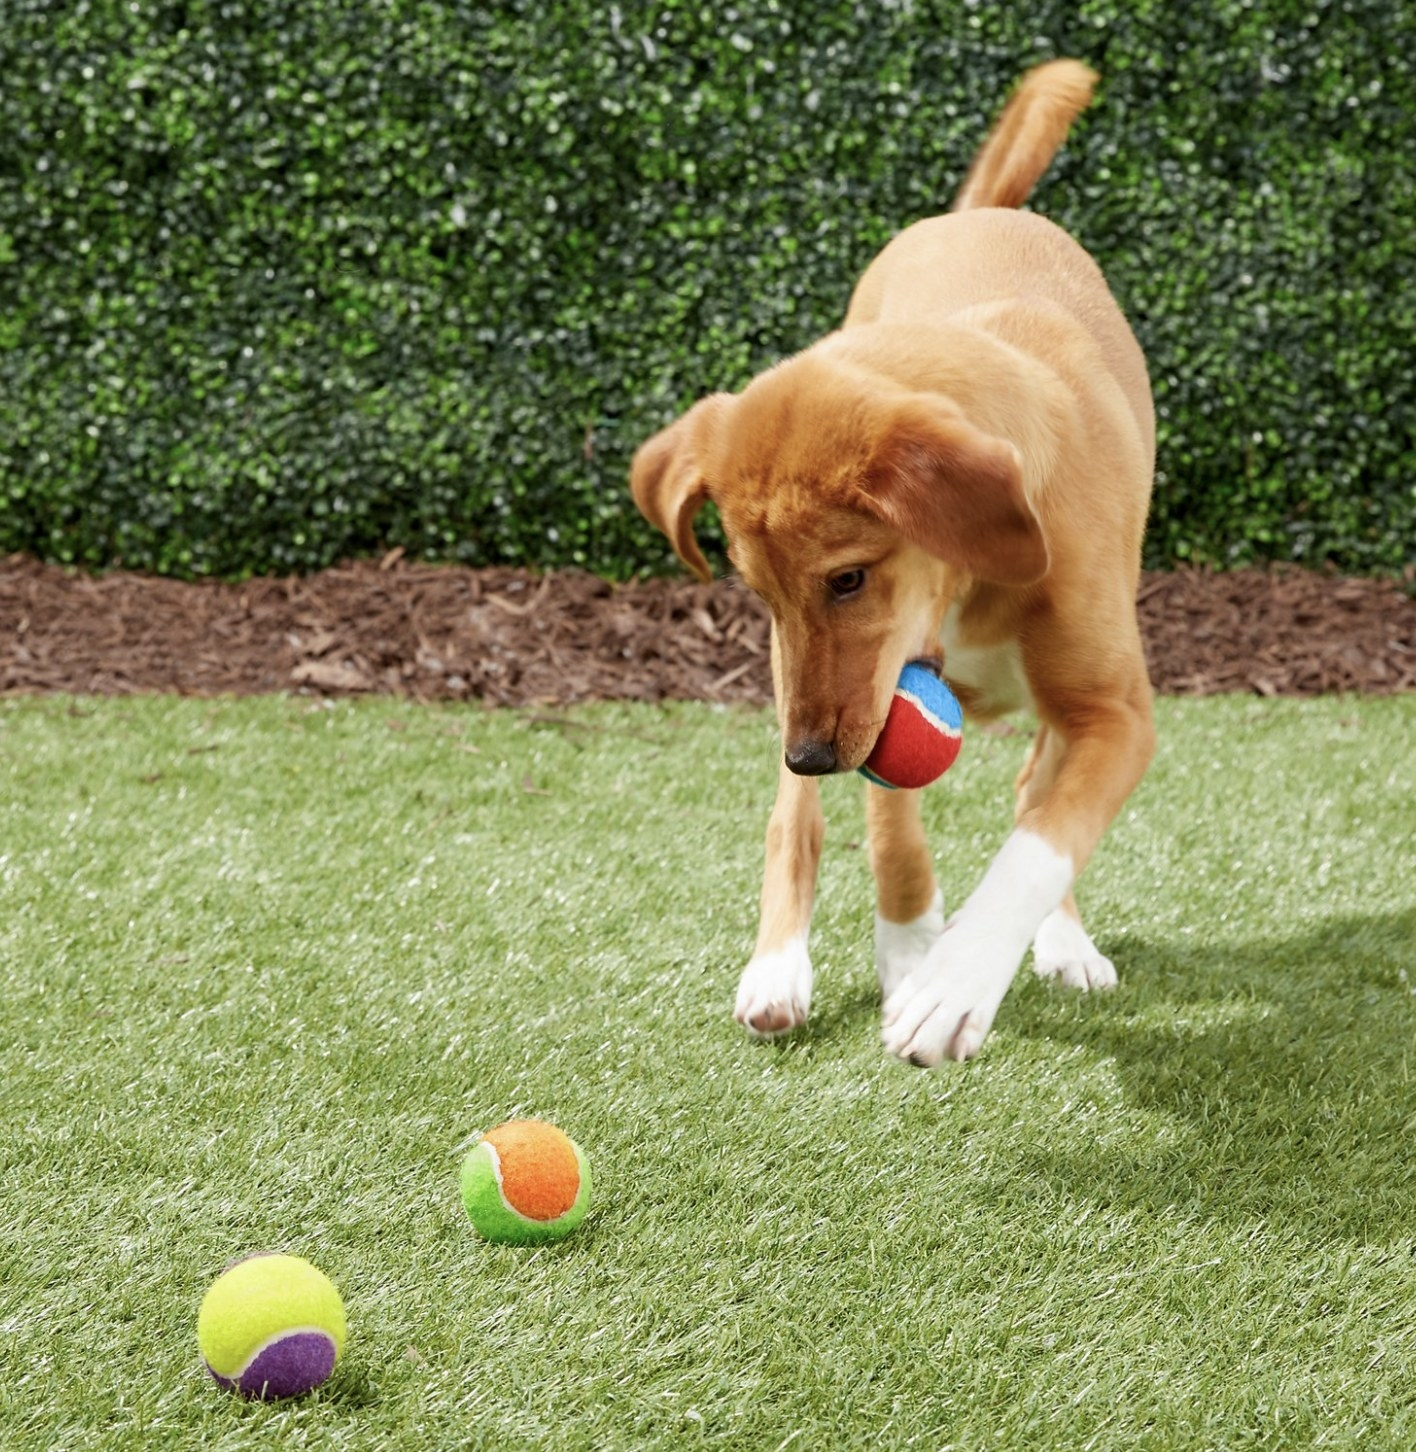 A dog is playing with three colorful tennis balls